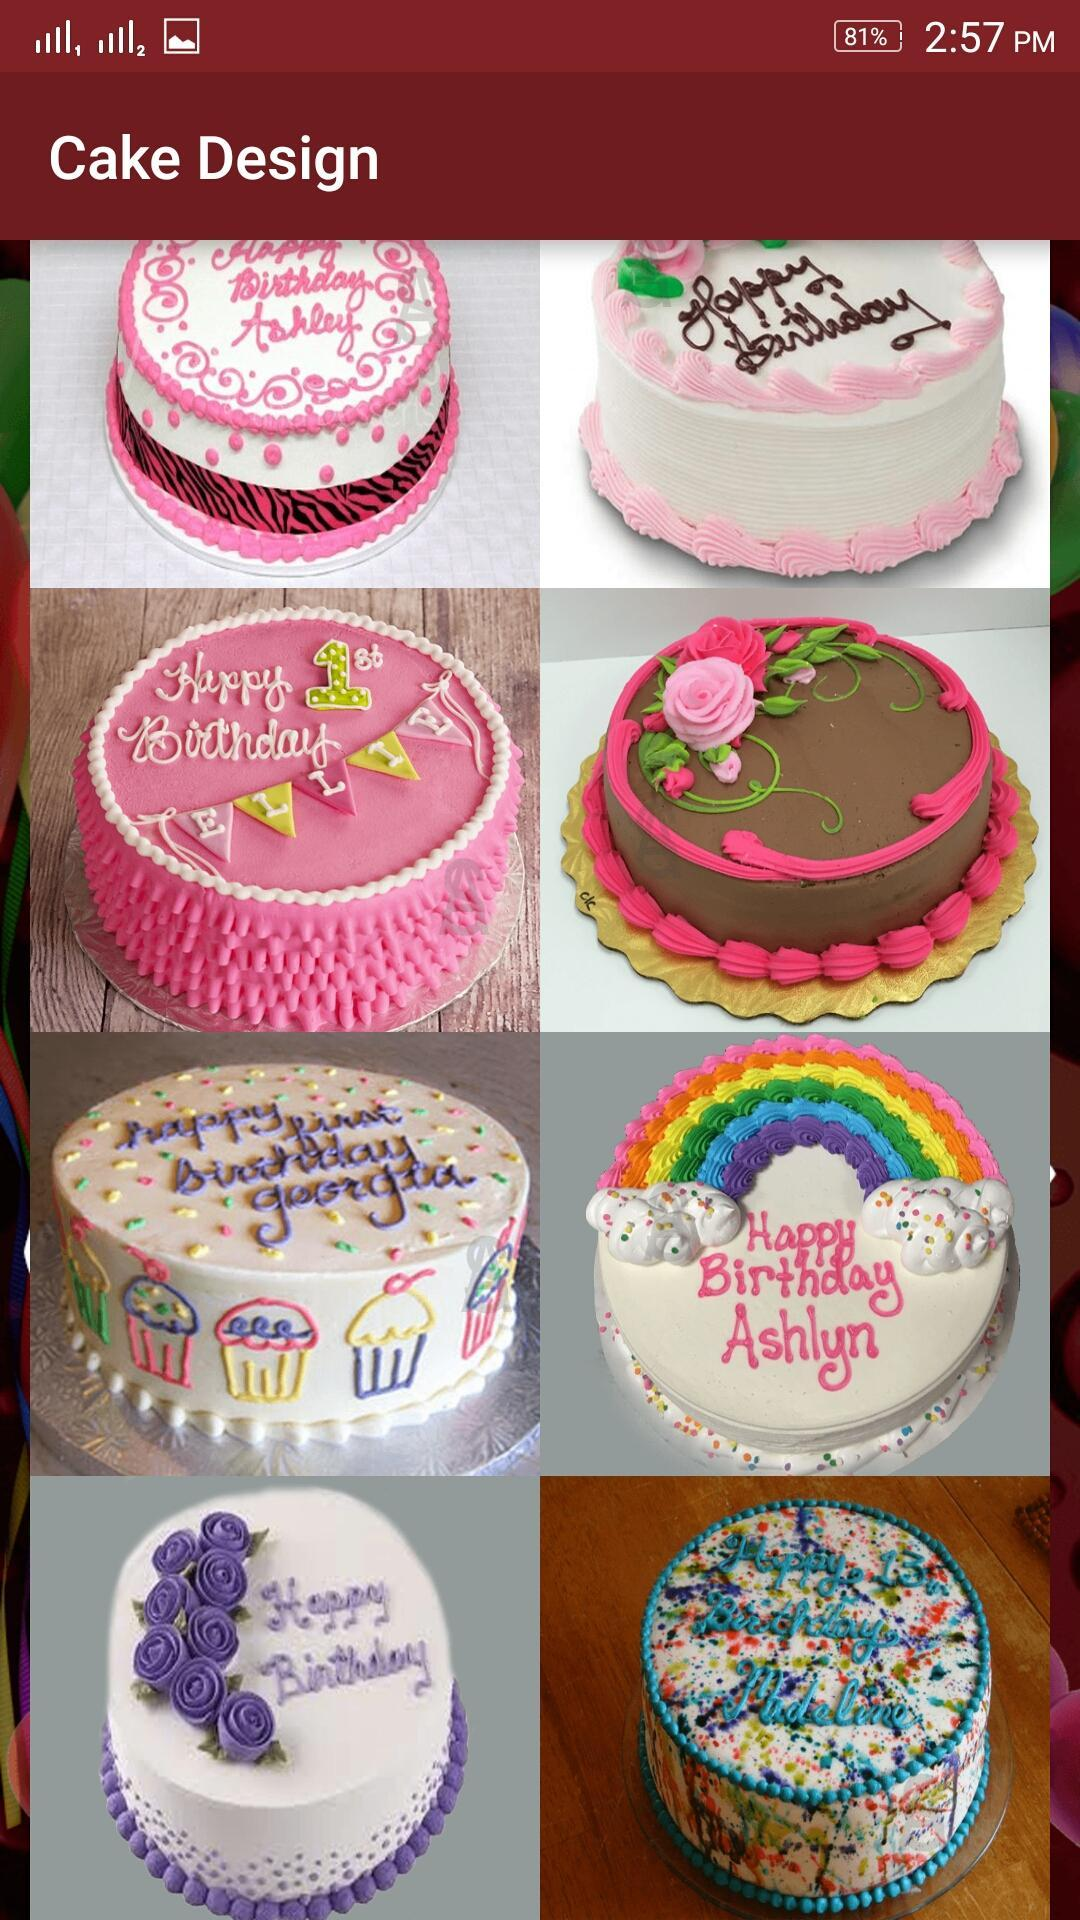 Outstanding Birthday Cakes Designs Round Cakes For Android Apk Download Funny Birthday Cards Online Hendilapandamsfinfo